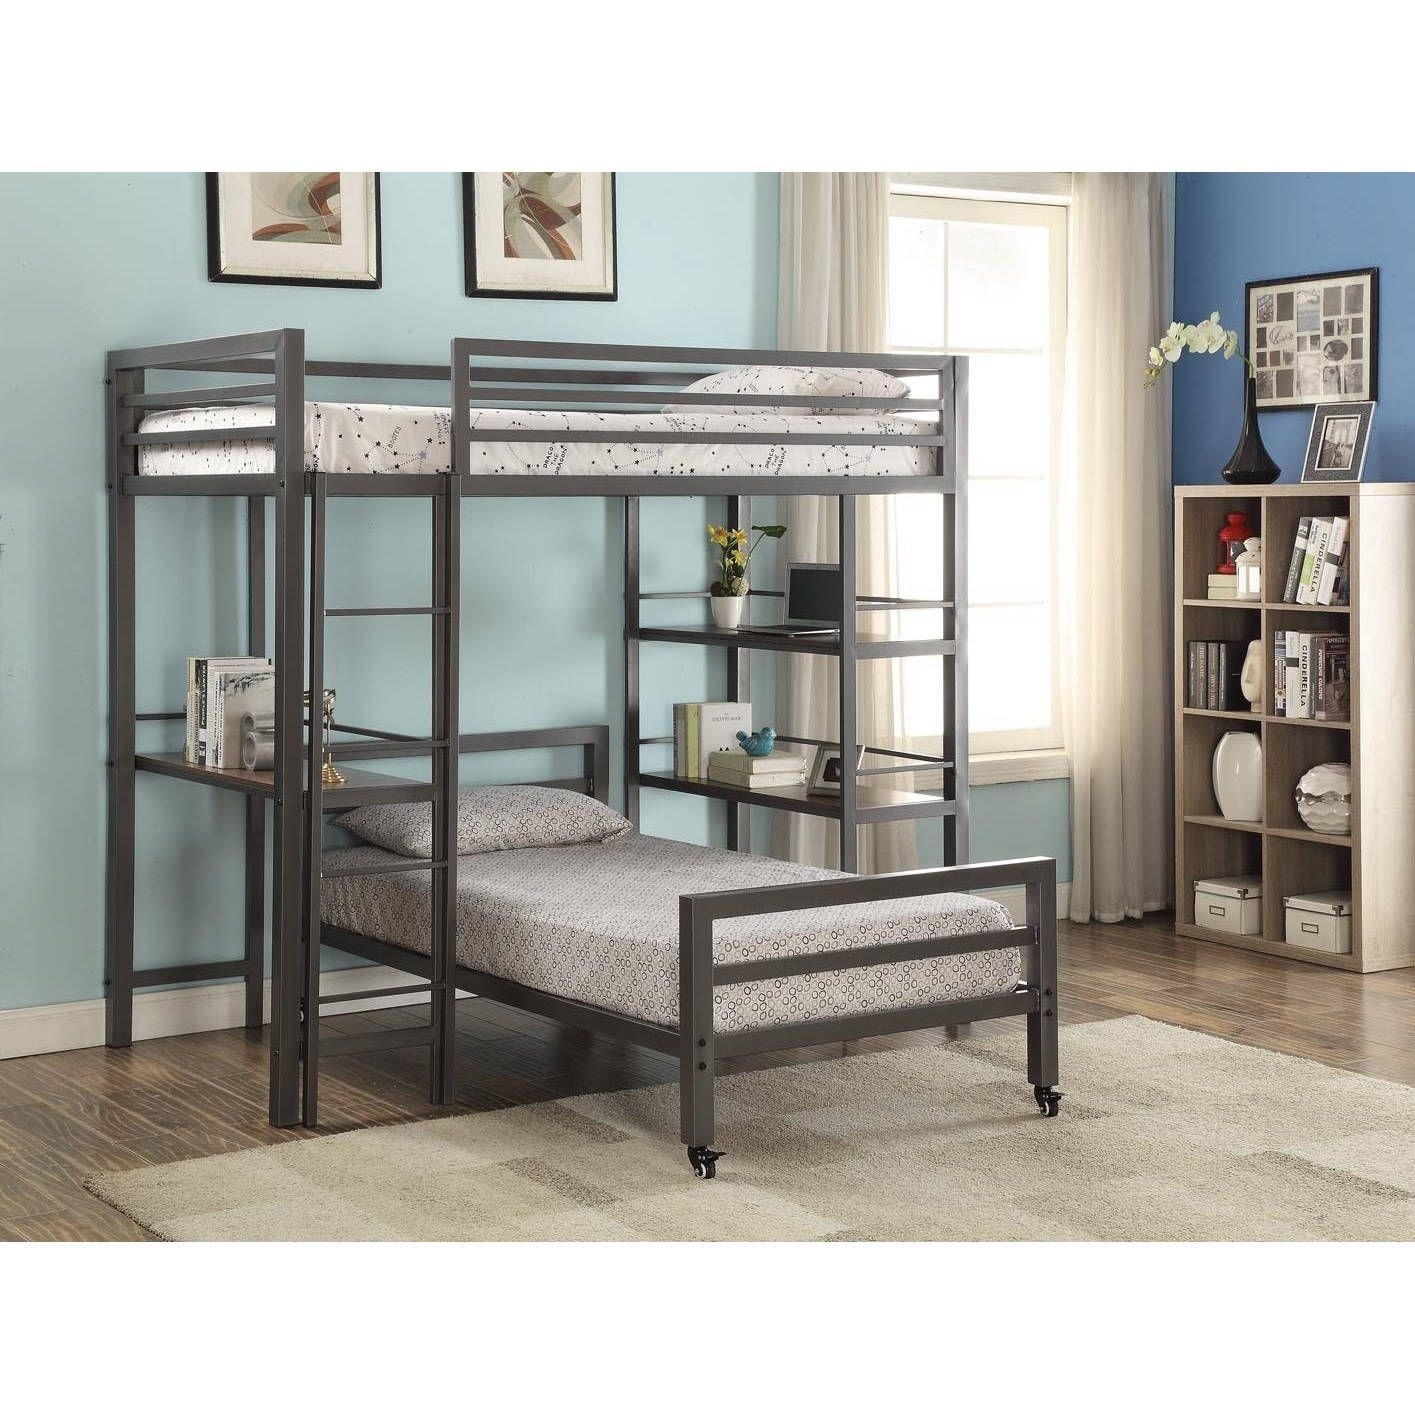 Loft bed with stairs and desk  Bella Montell Metal Twin LoftTwin Bed with Bookshelf and Writing